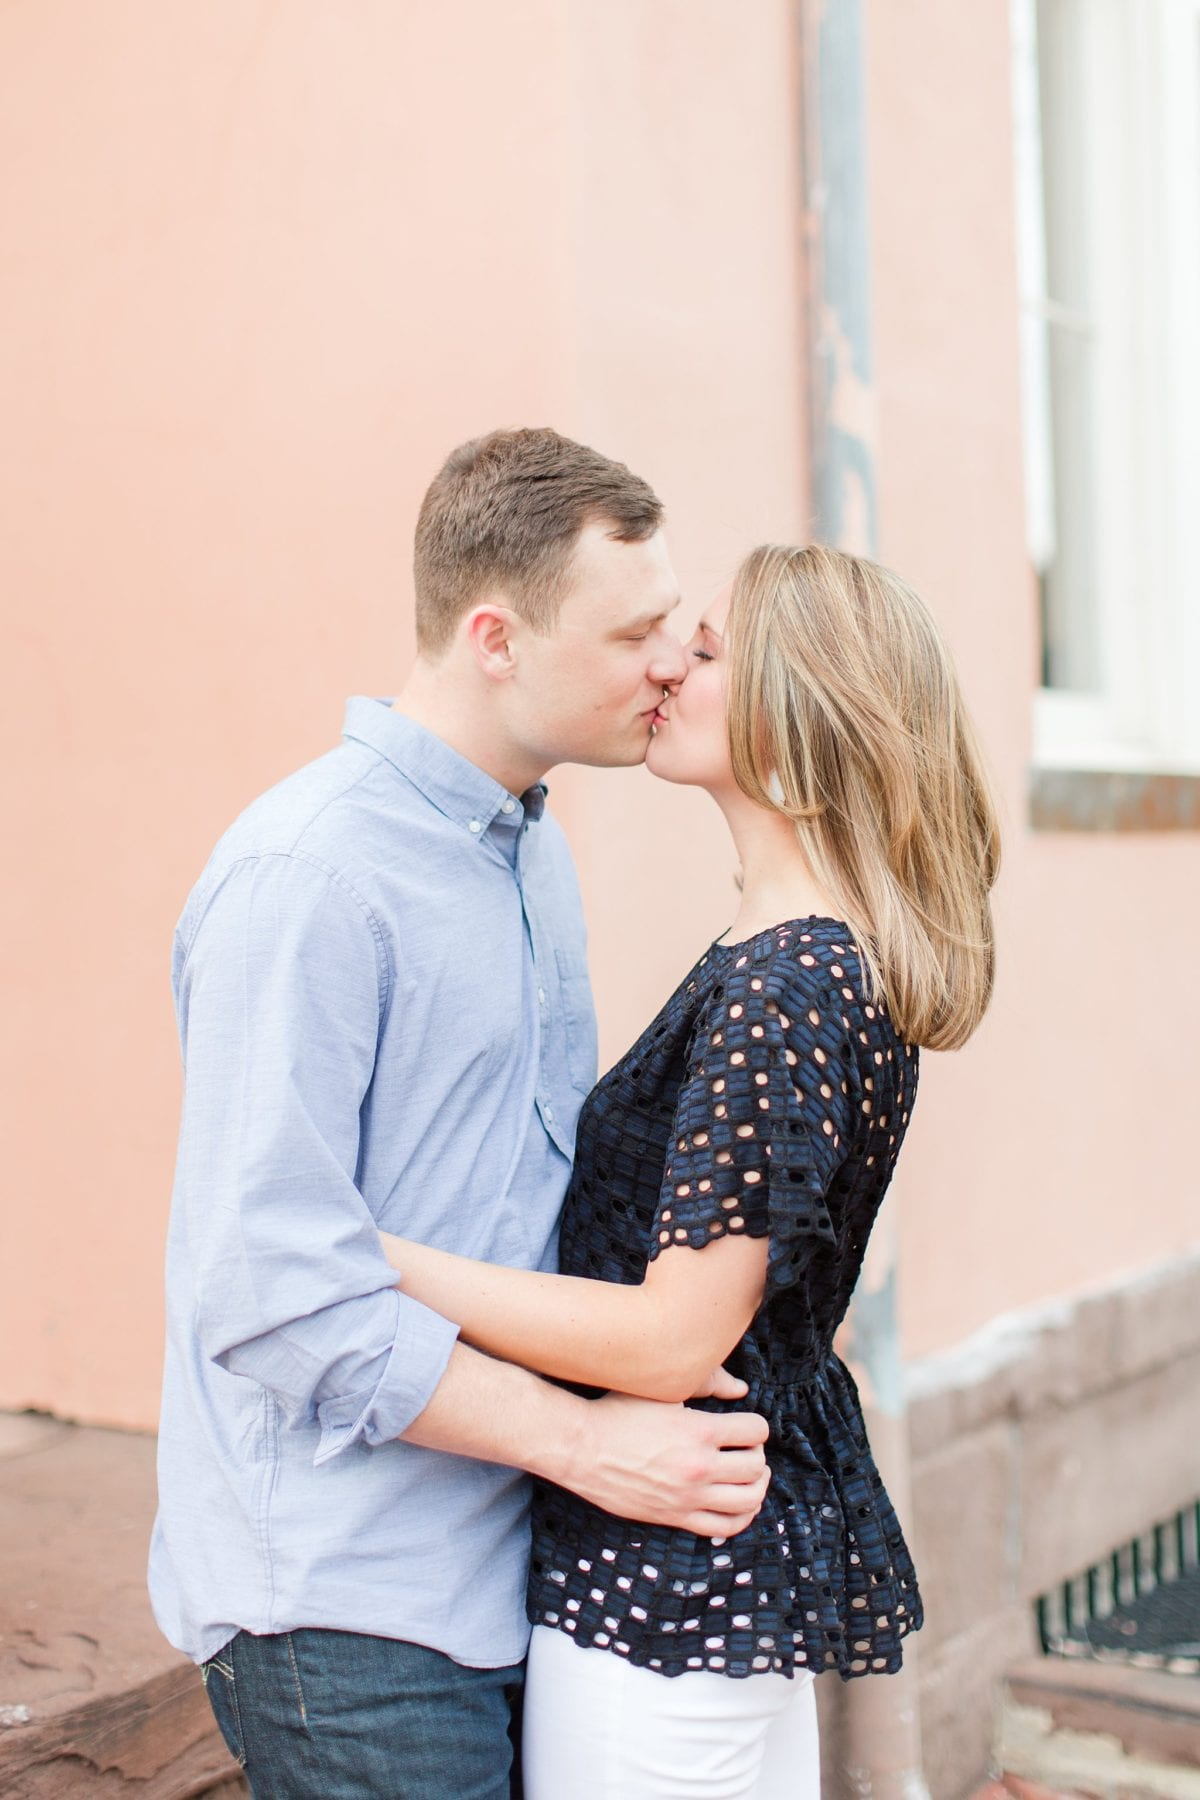 Springtime Old Town Alexandria Engagement Session Matt & Maxie Megan Kelsey Photography-211.jpg